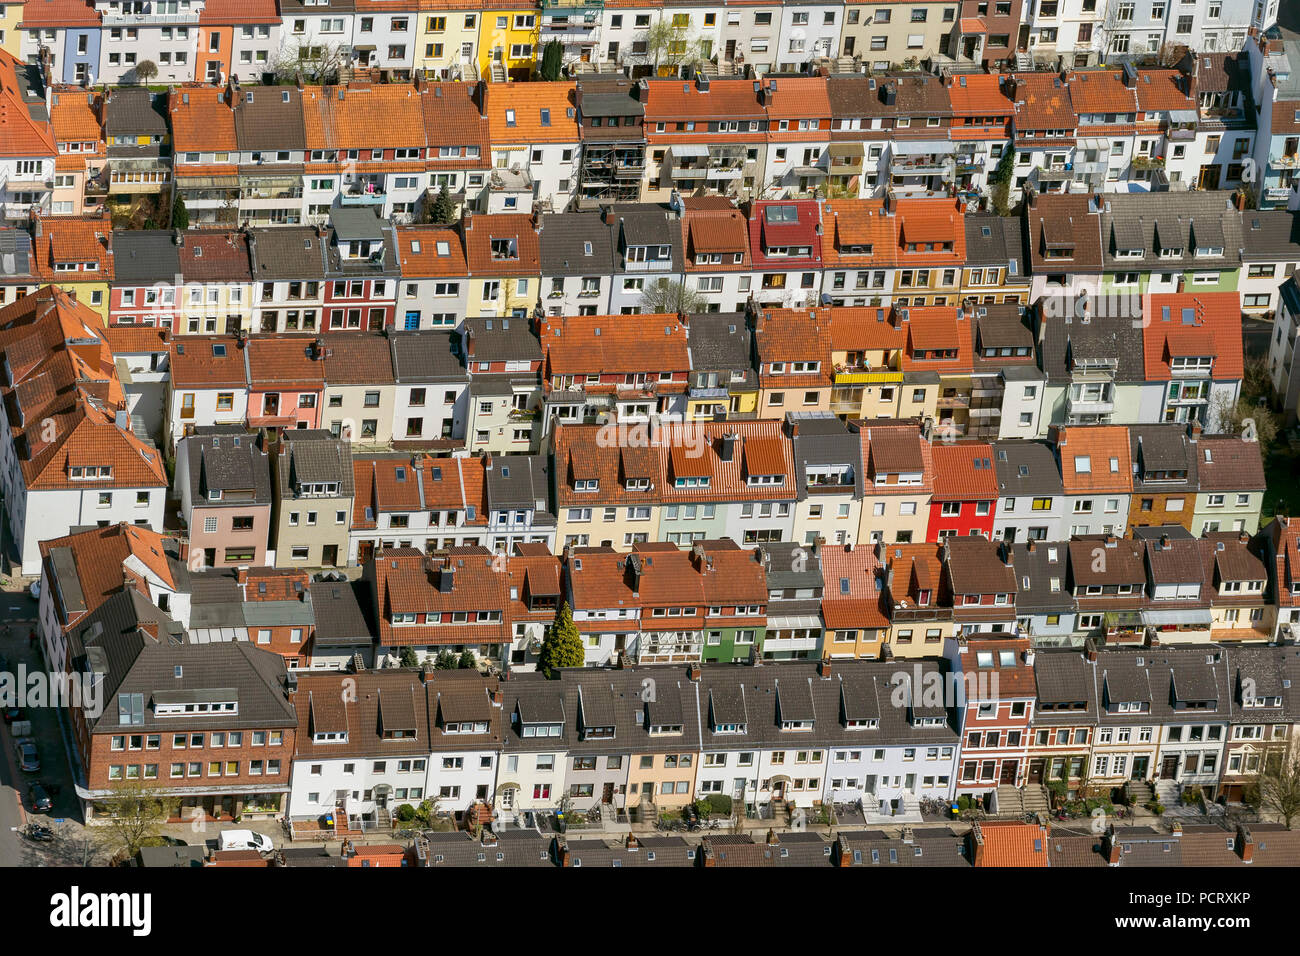 Row of houses in the district Findorff, rented flats, flats, red tile roofs, penthouses, aerial view, aerial photographs of Bremen - Stock Image